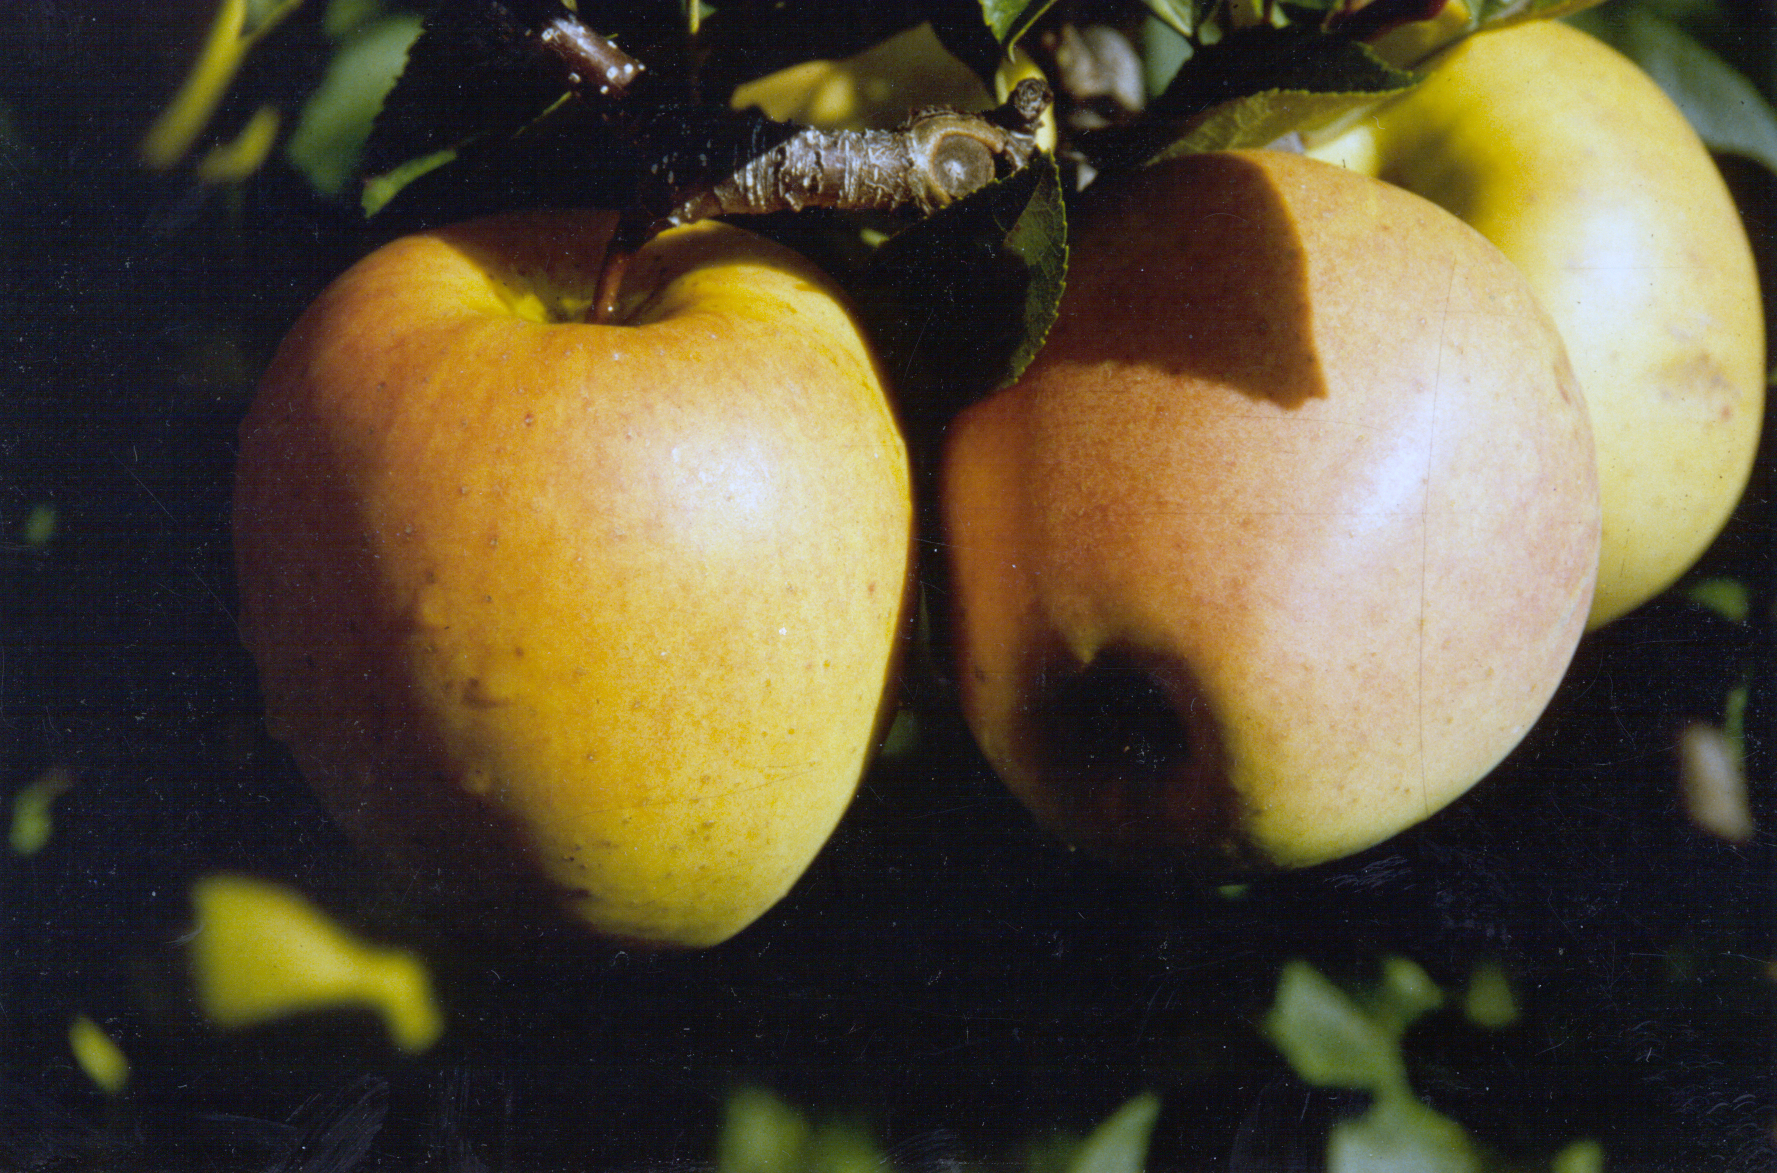 The apple variety Golden Haidegg was created in the 1980s by irradiating the Golden Delicious cultivar.   International Atomic Energy Agency/Flickr  (CC BY-SA 2.0)